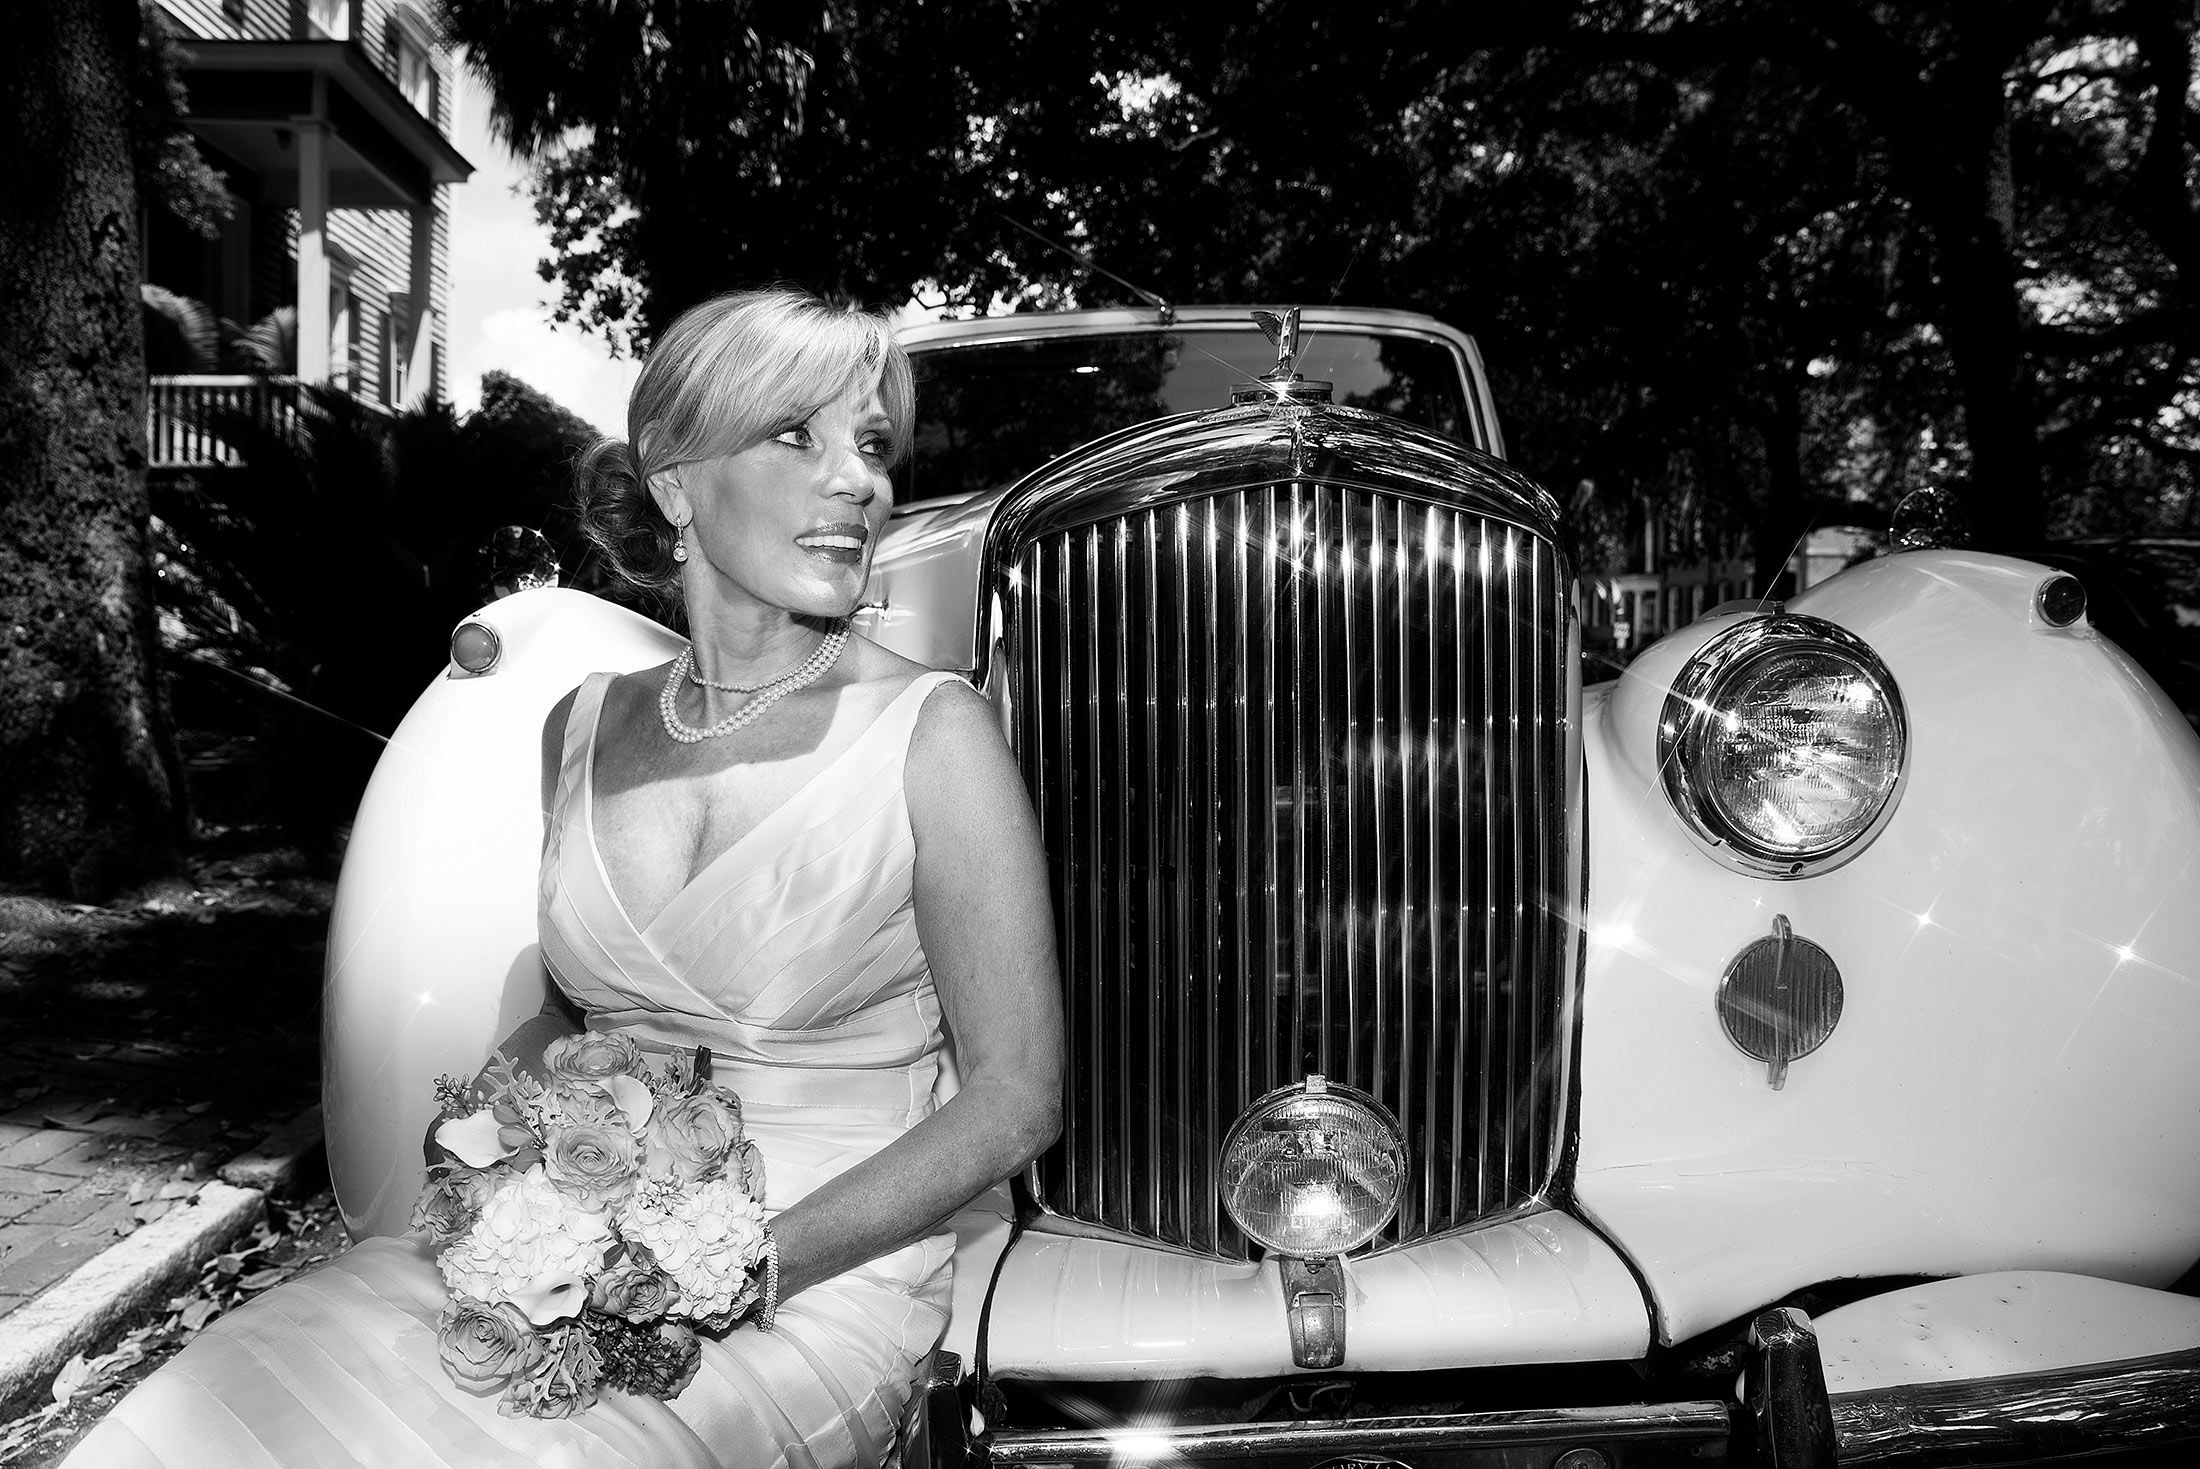 1950 Bentley, could not resist asking the bride to sit on the front bumper